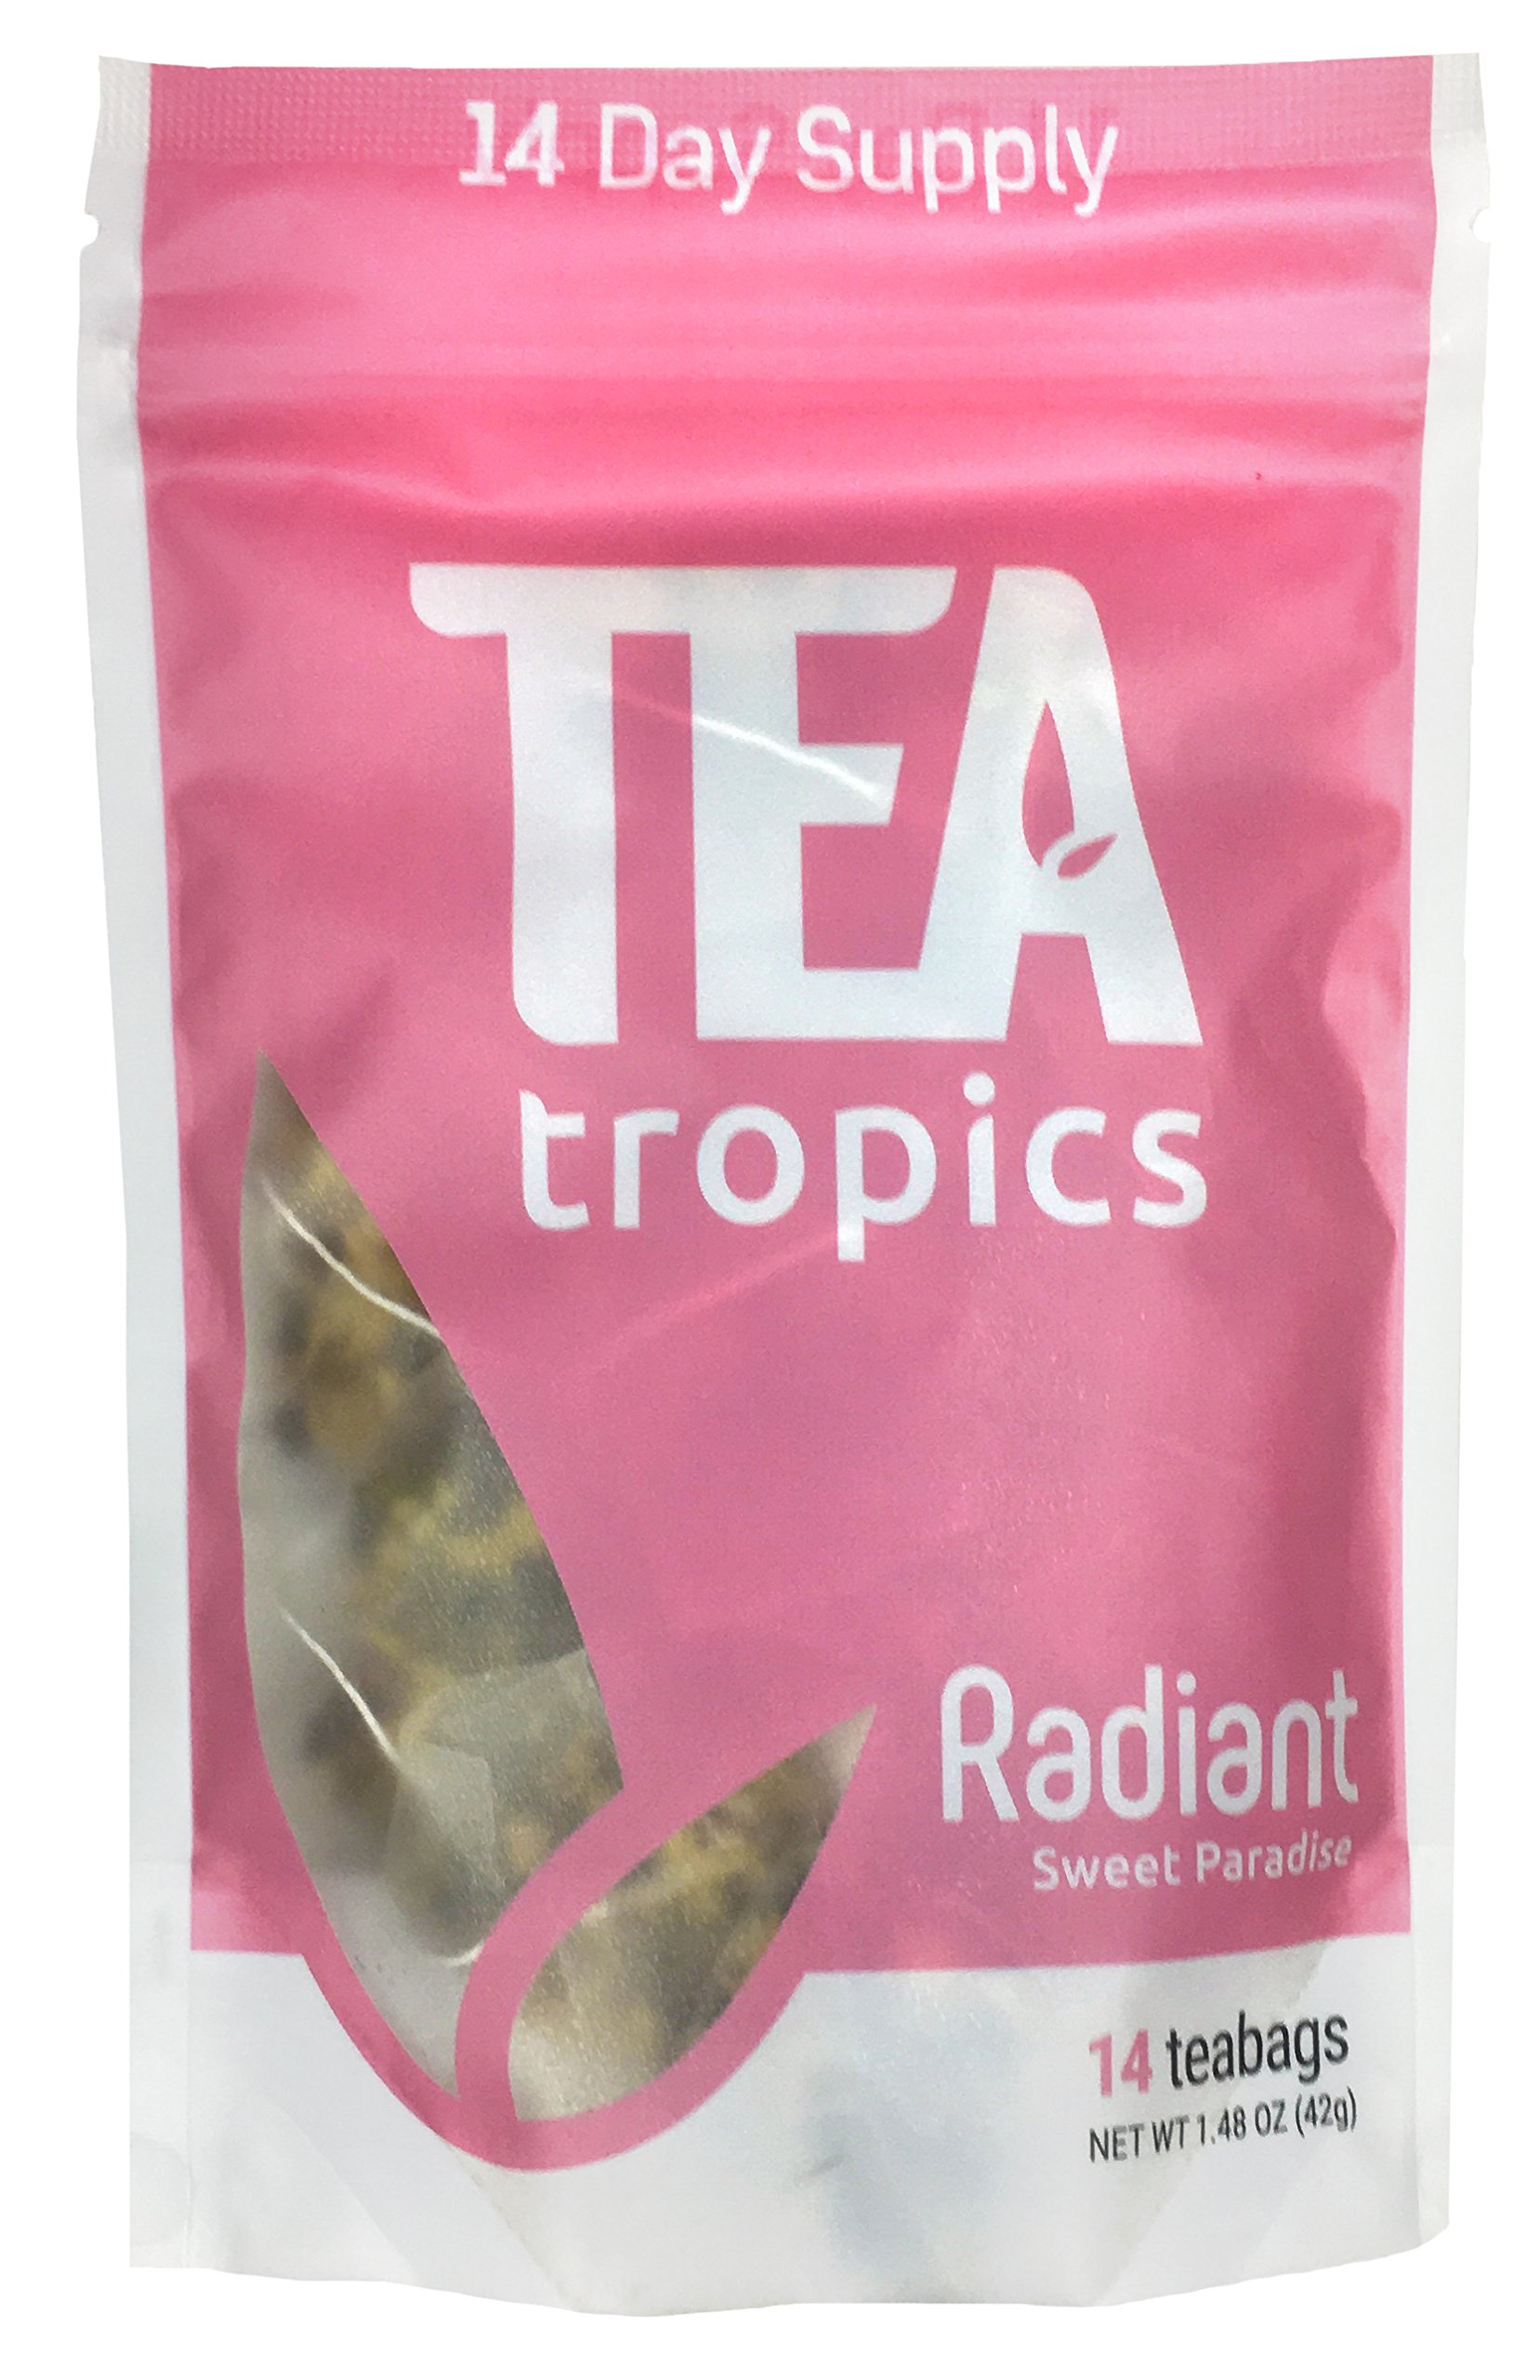 Tea Tropics 14 Day Radiant Tea   Promotes Healthy Hair, Skin, & Nails   Anti Aging Formula for Acne & Wrinkles   Natural Supplement   14 Biodegradable Pyramid Tea Bags